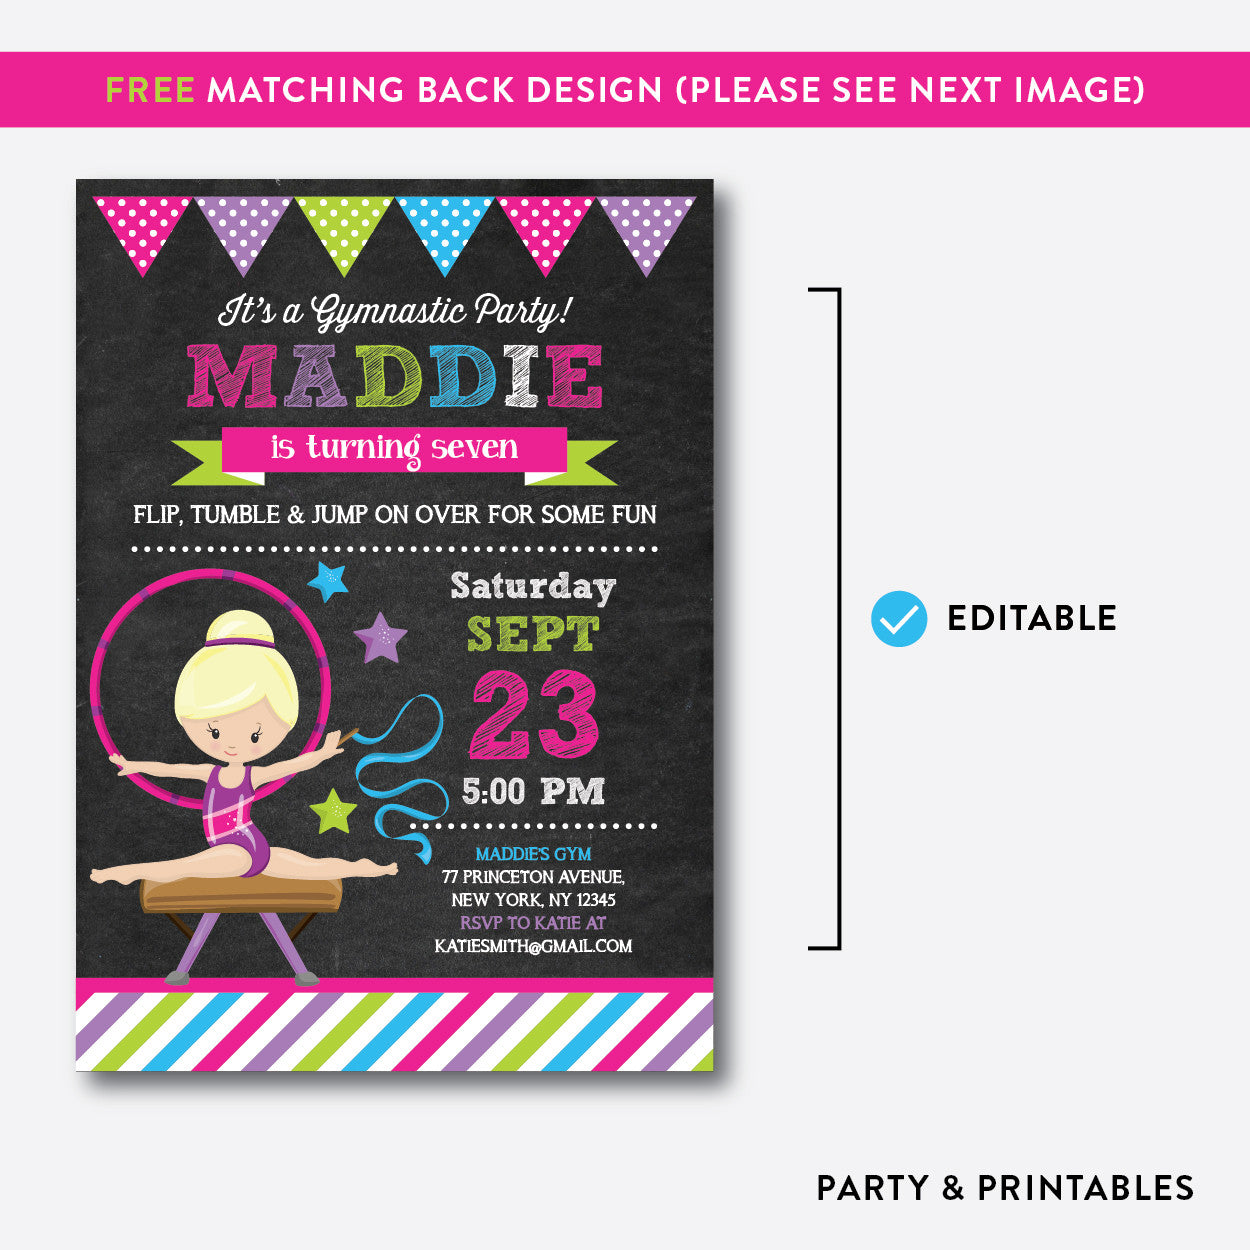 Gymnastics Chalkboard Kids Birthday Invitation / Editable / Instant Download (CKB.467D), invitation - Party and Printables